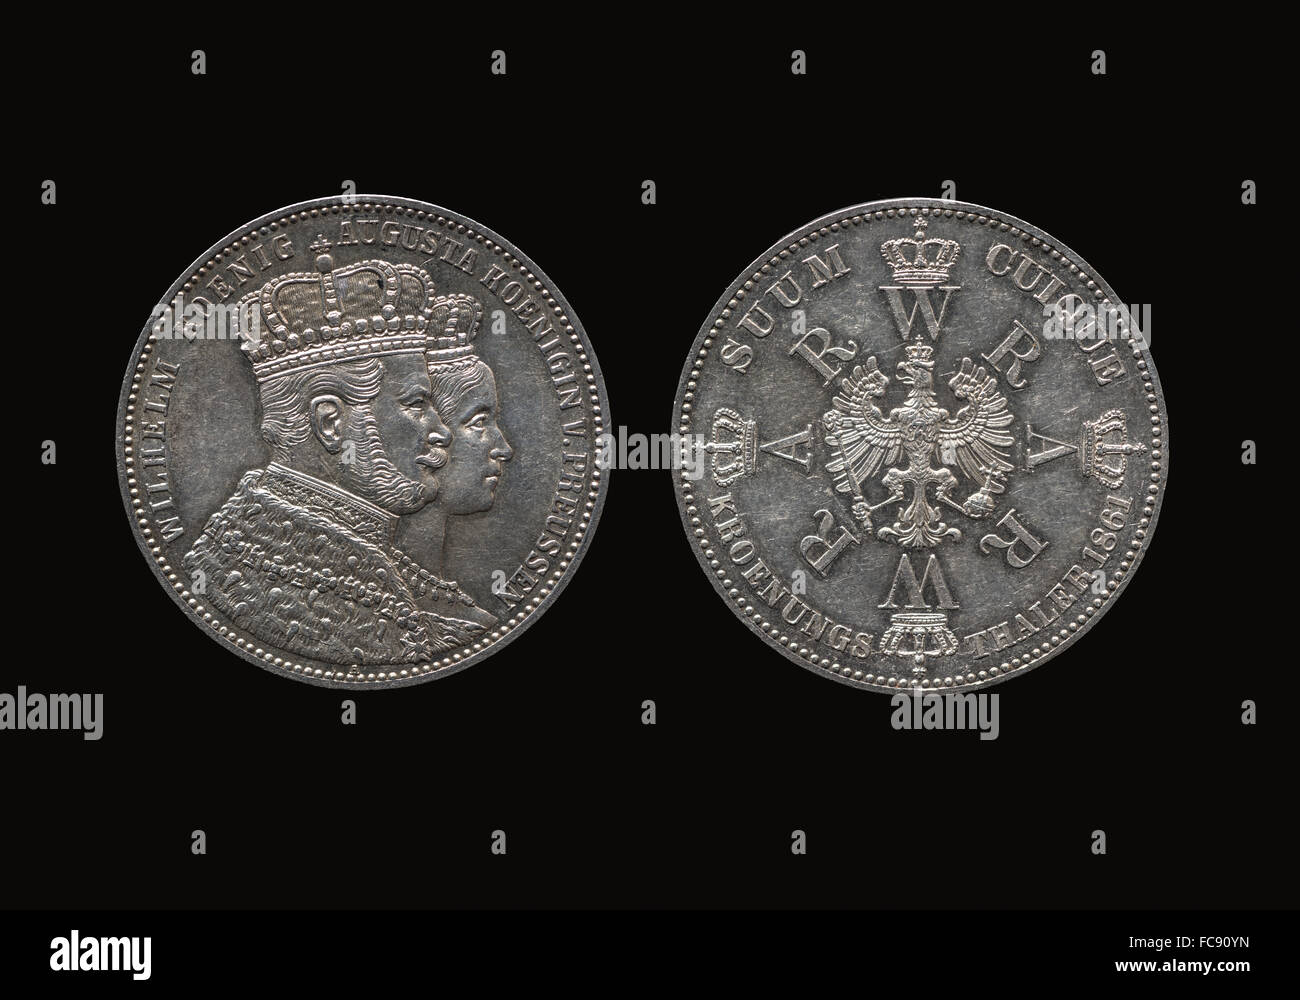 King William, Prussian Coronation Thaler - Stock Image